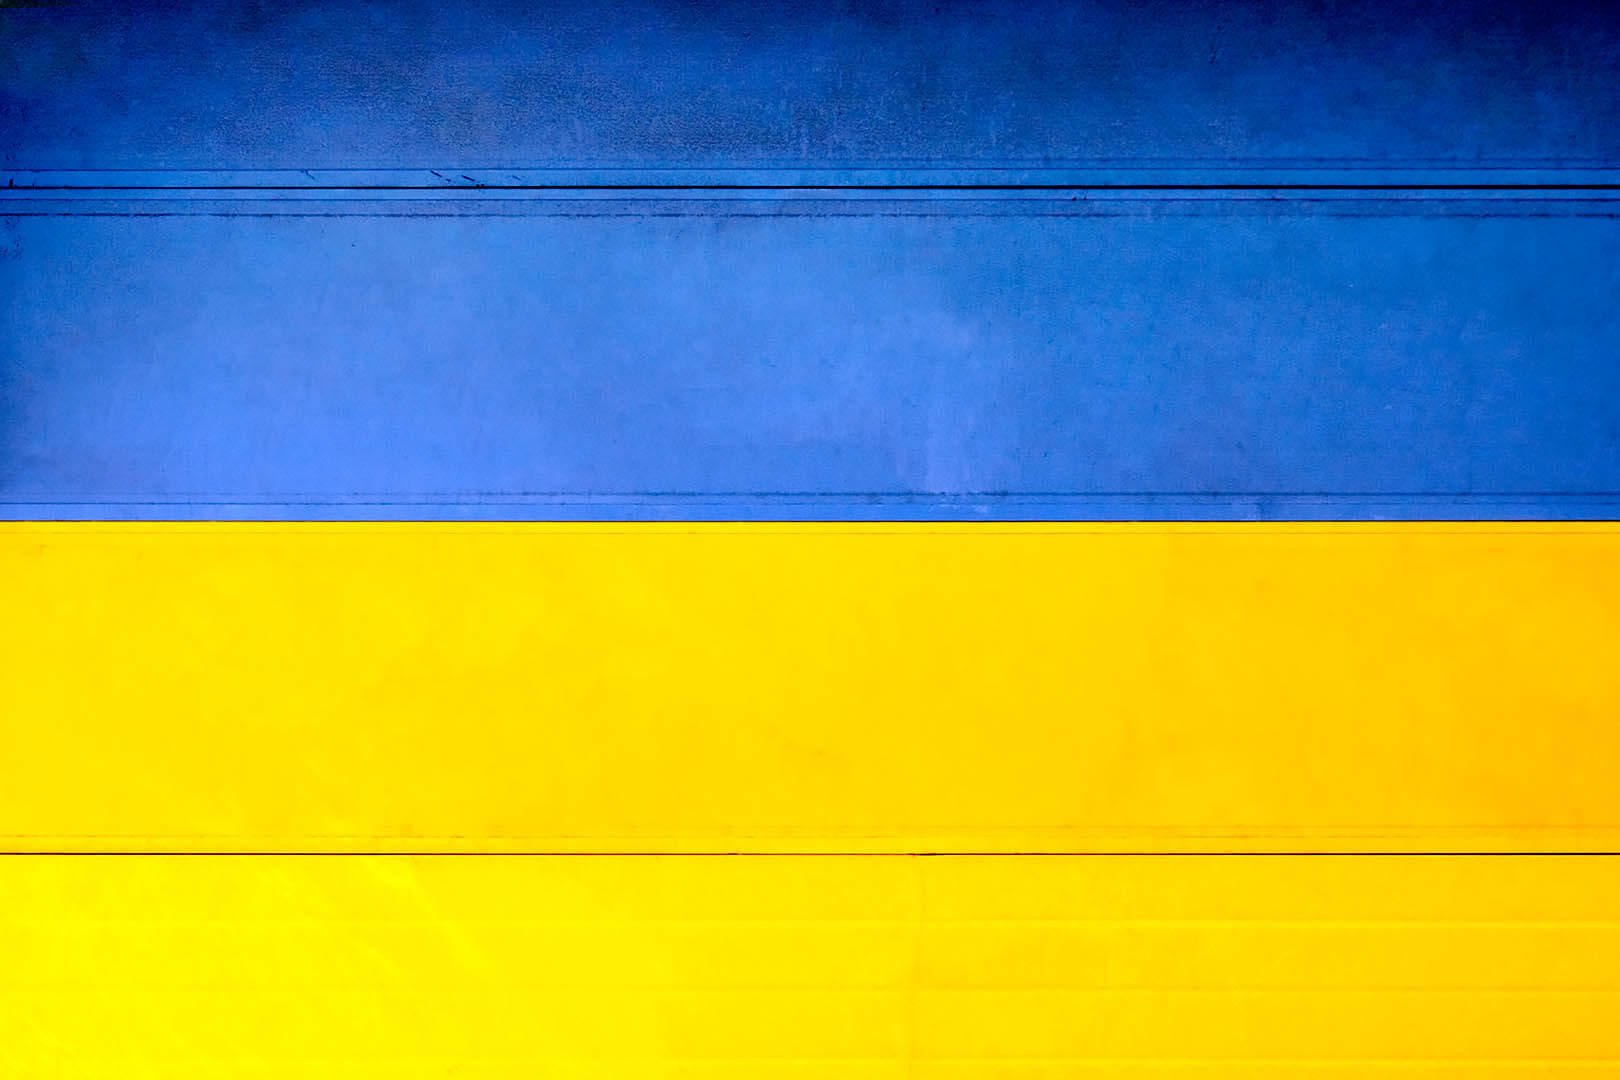 Blue and Yellow II